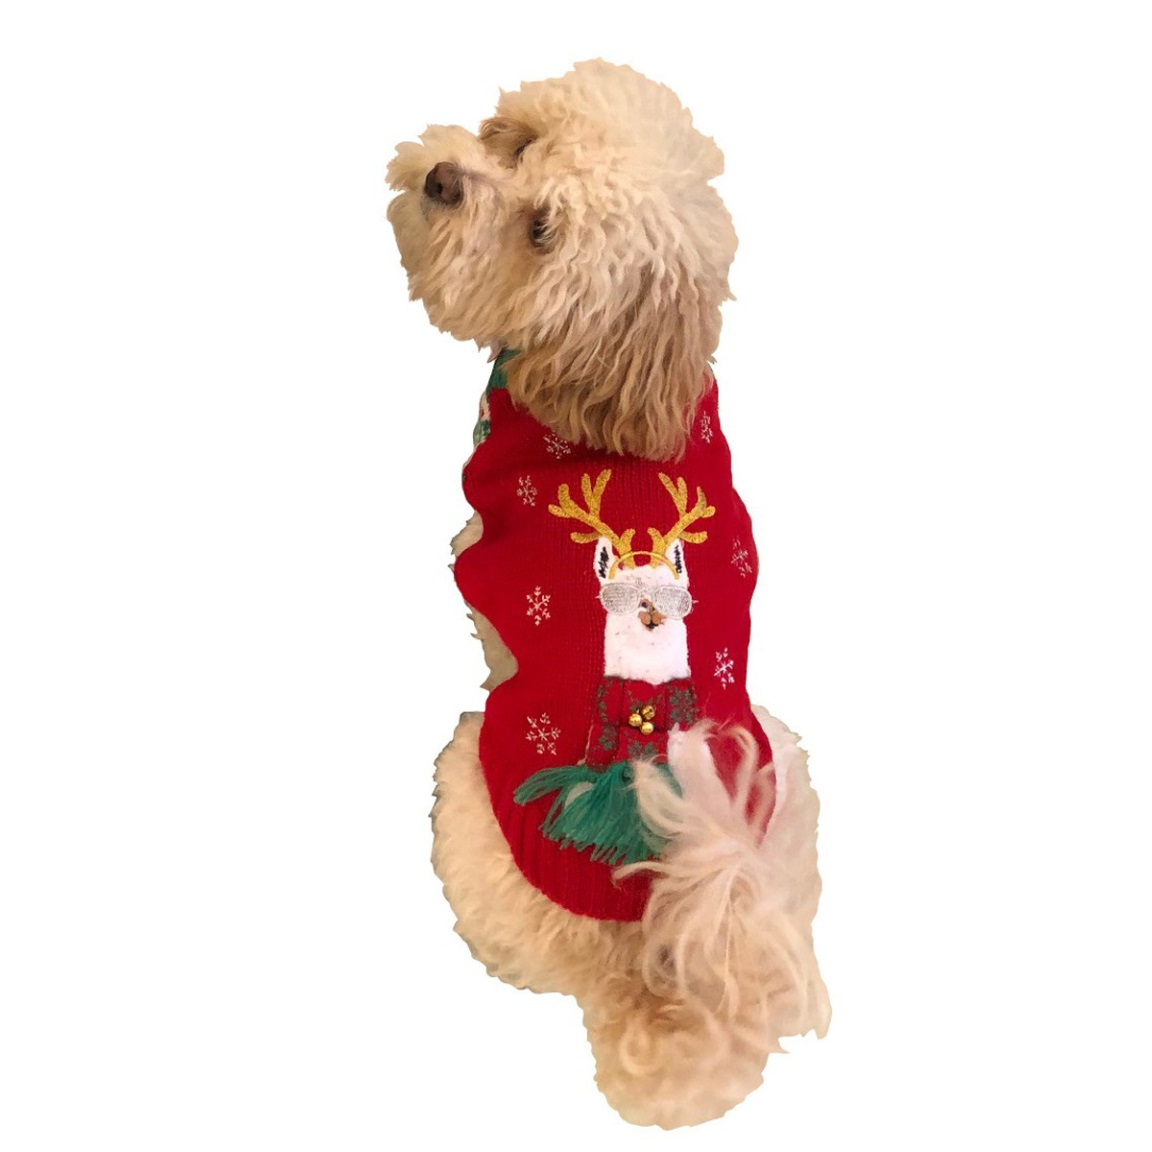 There Are Ugly Holiday Sweaters for Every Pet—Even Guinea Pigs